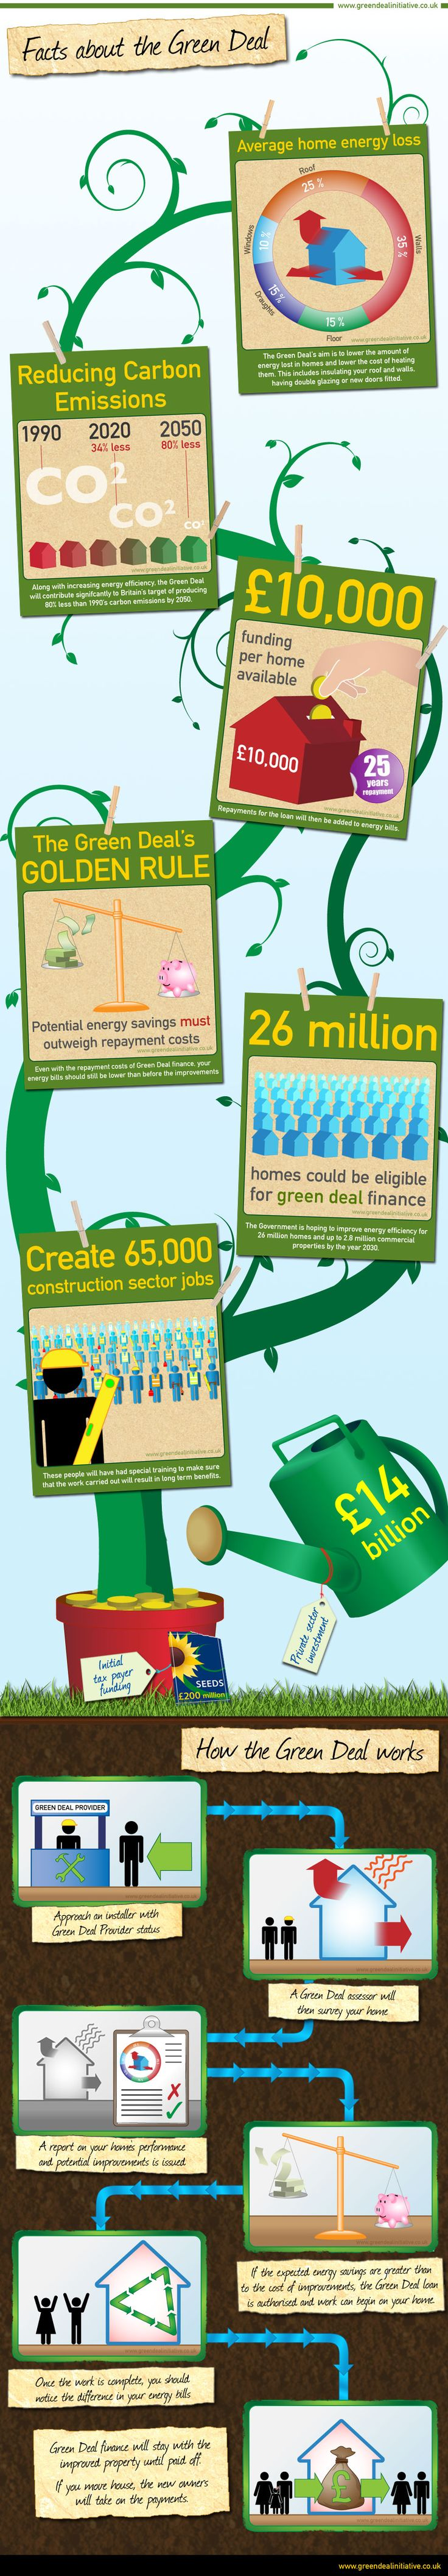 Facts about the Green Deal infographic